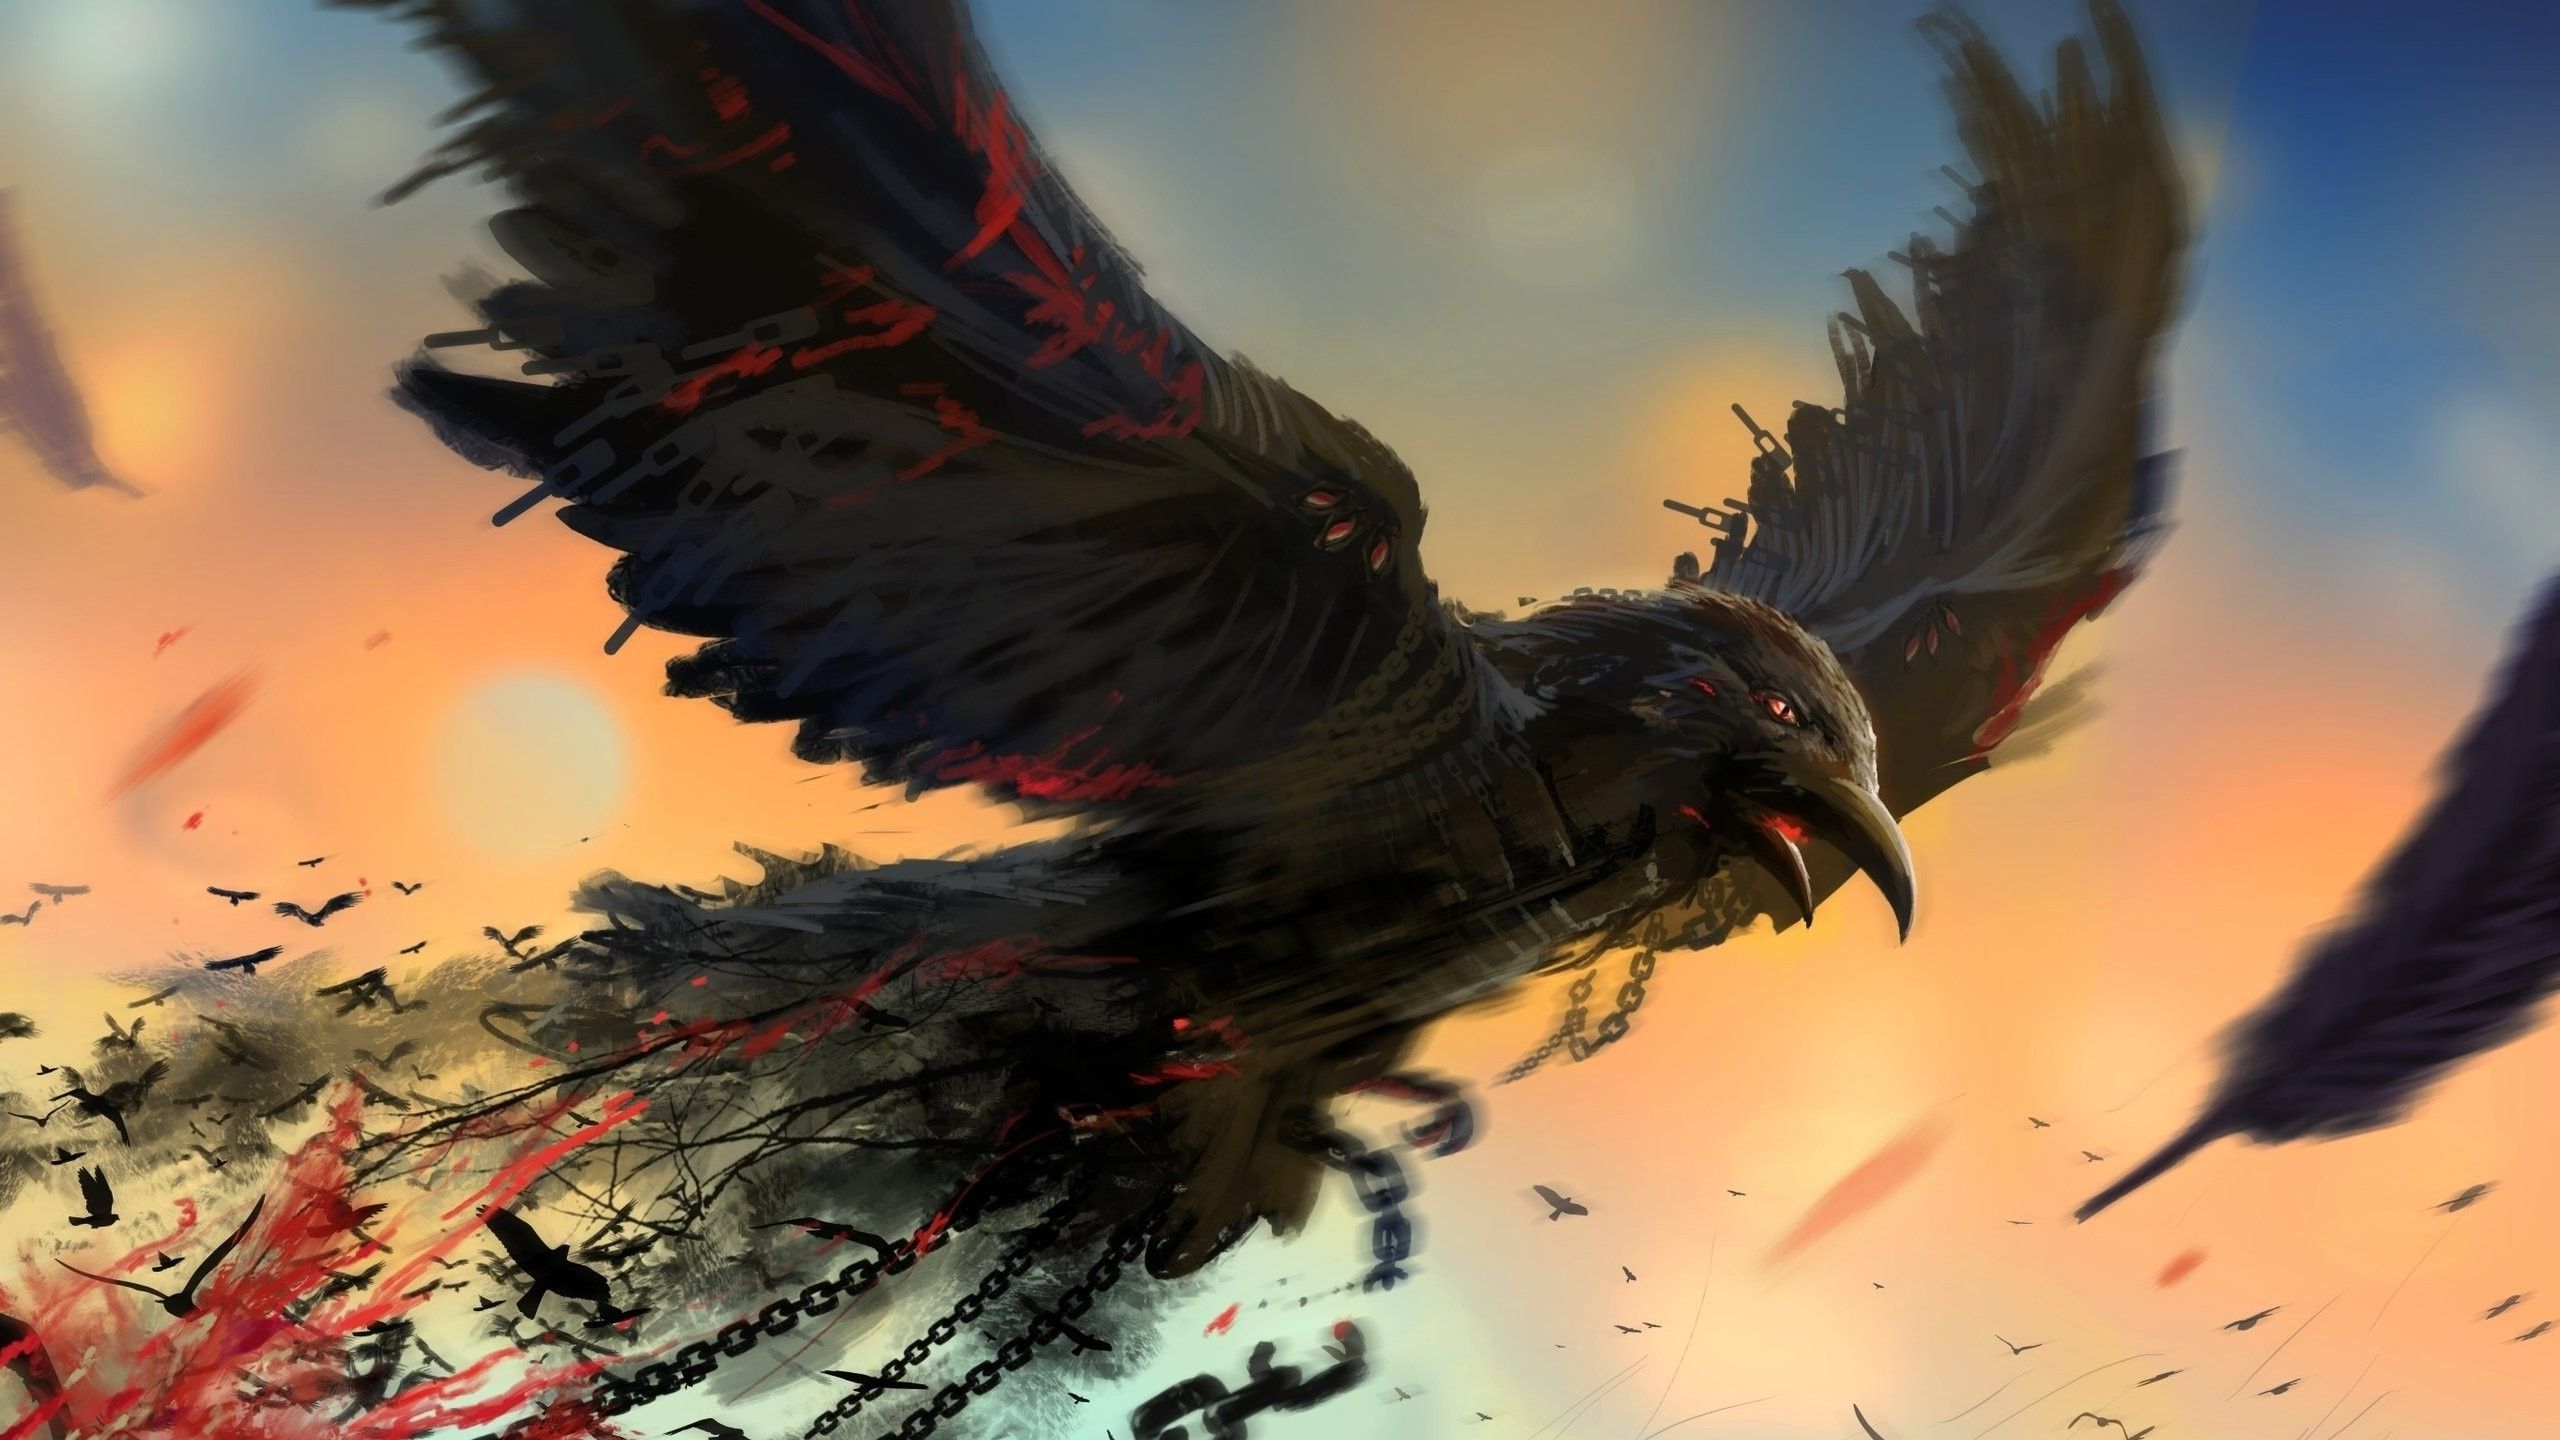 Crow Art Wallpapers Top Free Crow Art Backgrounds Wallpaperaccess